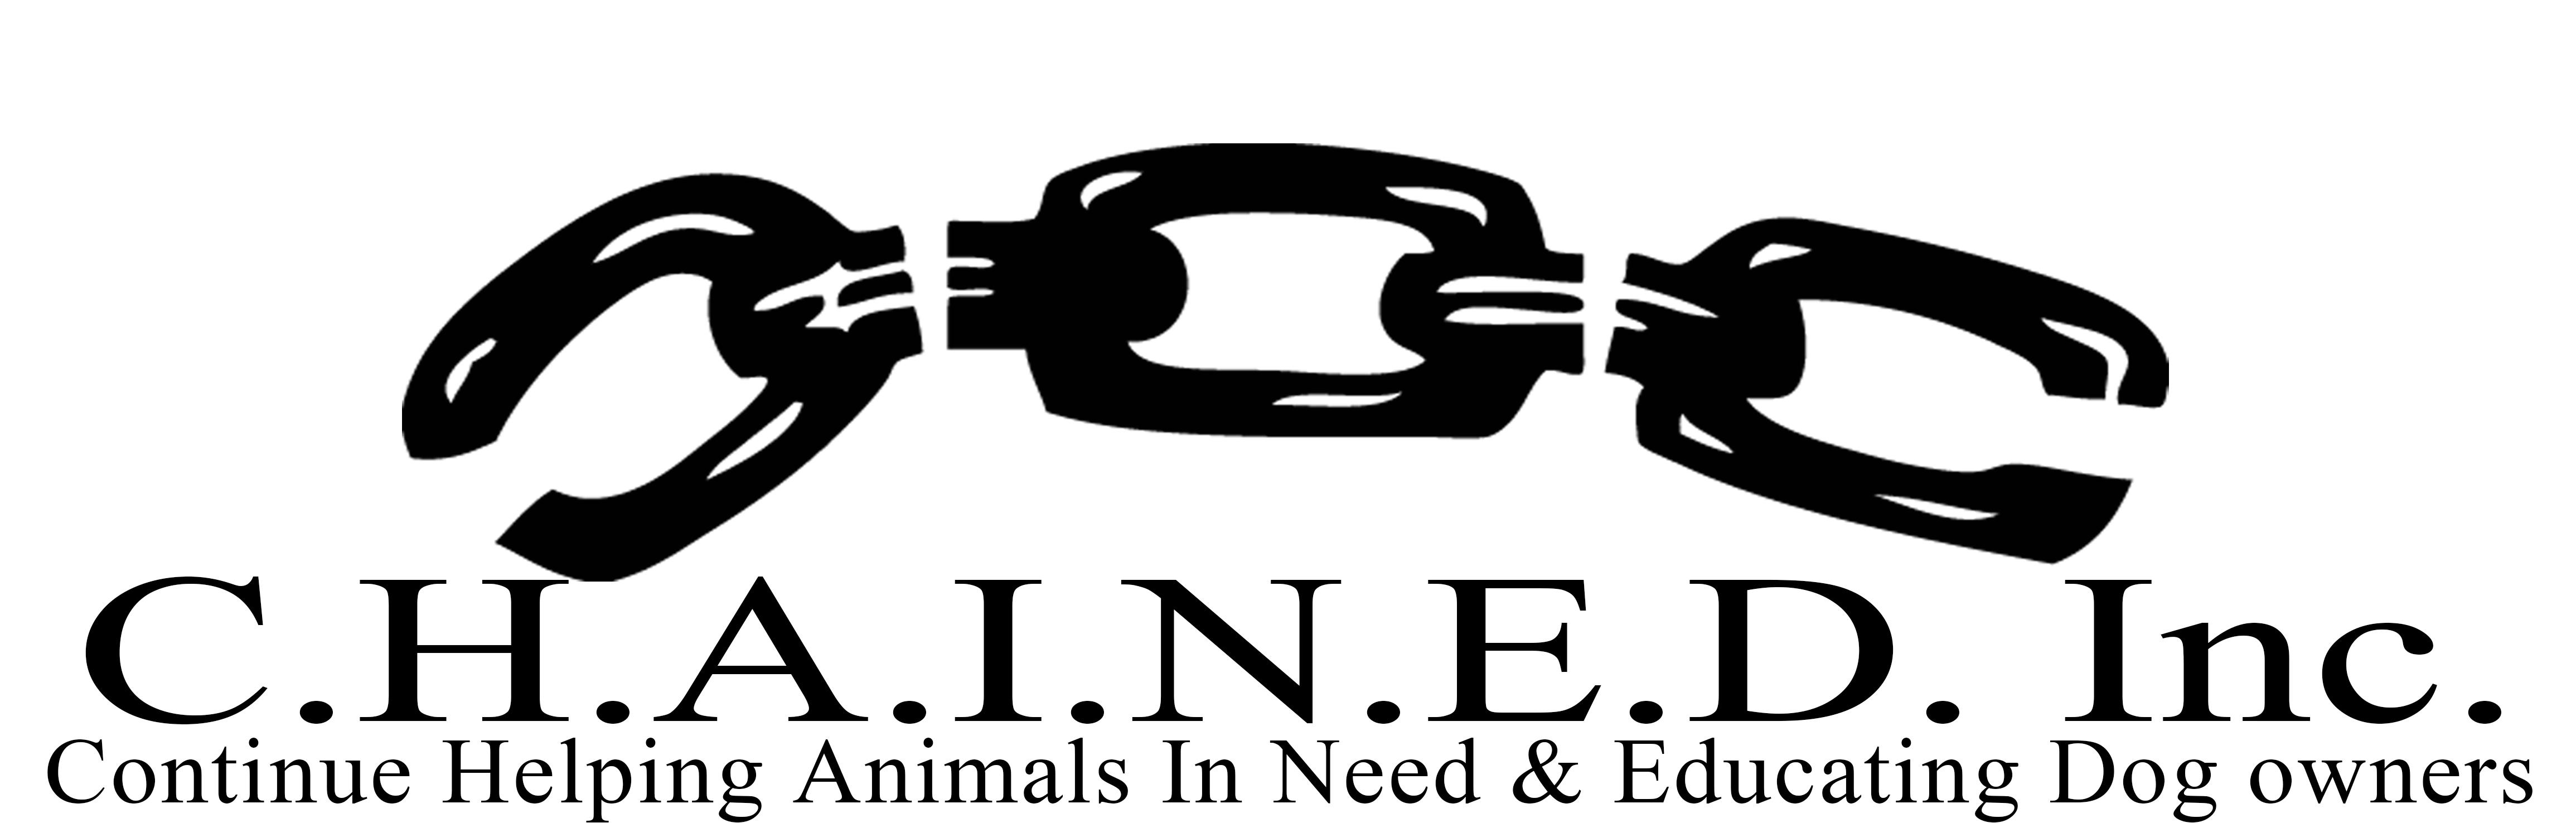 C.H.A.I.N.E.D. Inc. - Continuing Helping Animals in Need & Educating Dog owners